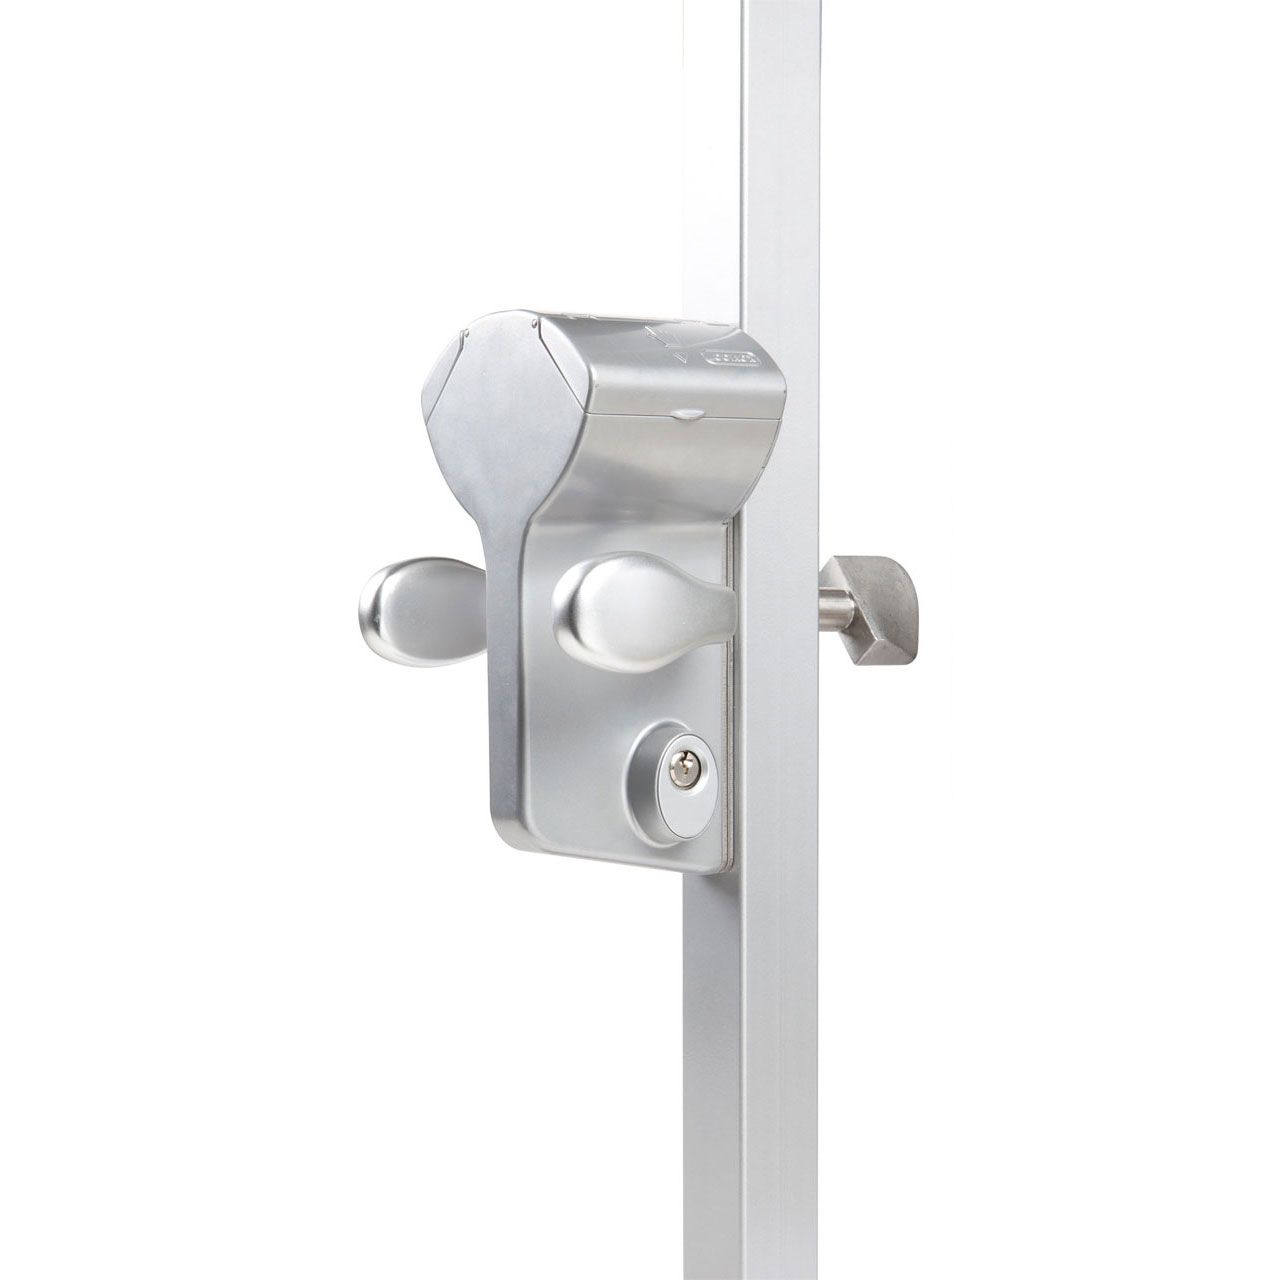 Locinox LLKZV2 Leonardo Mechanical Code Sliding Gate Locks